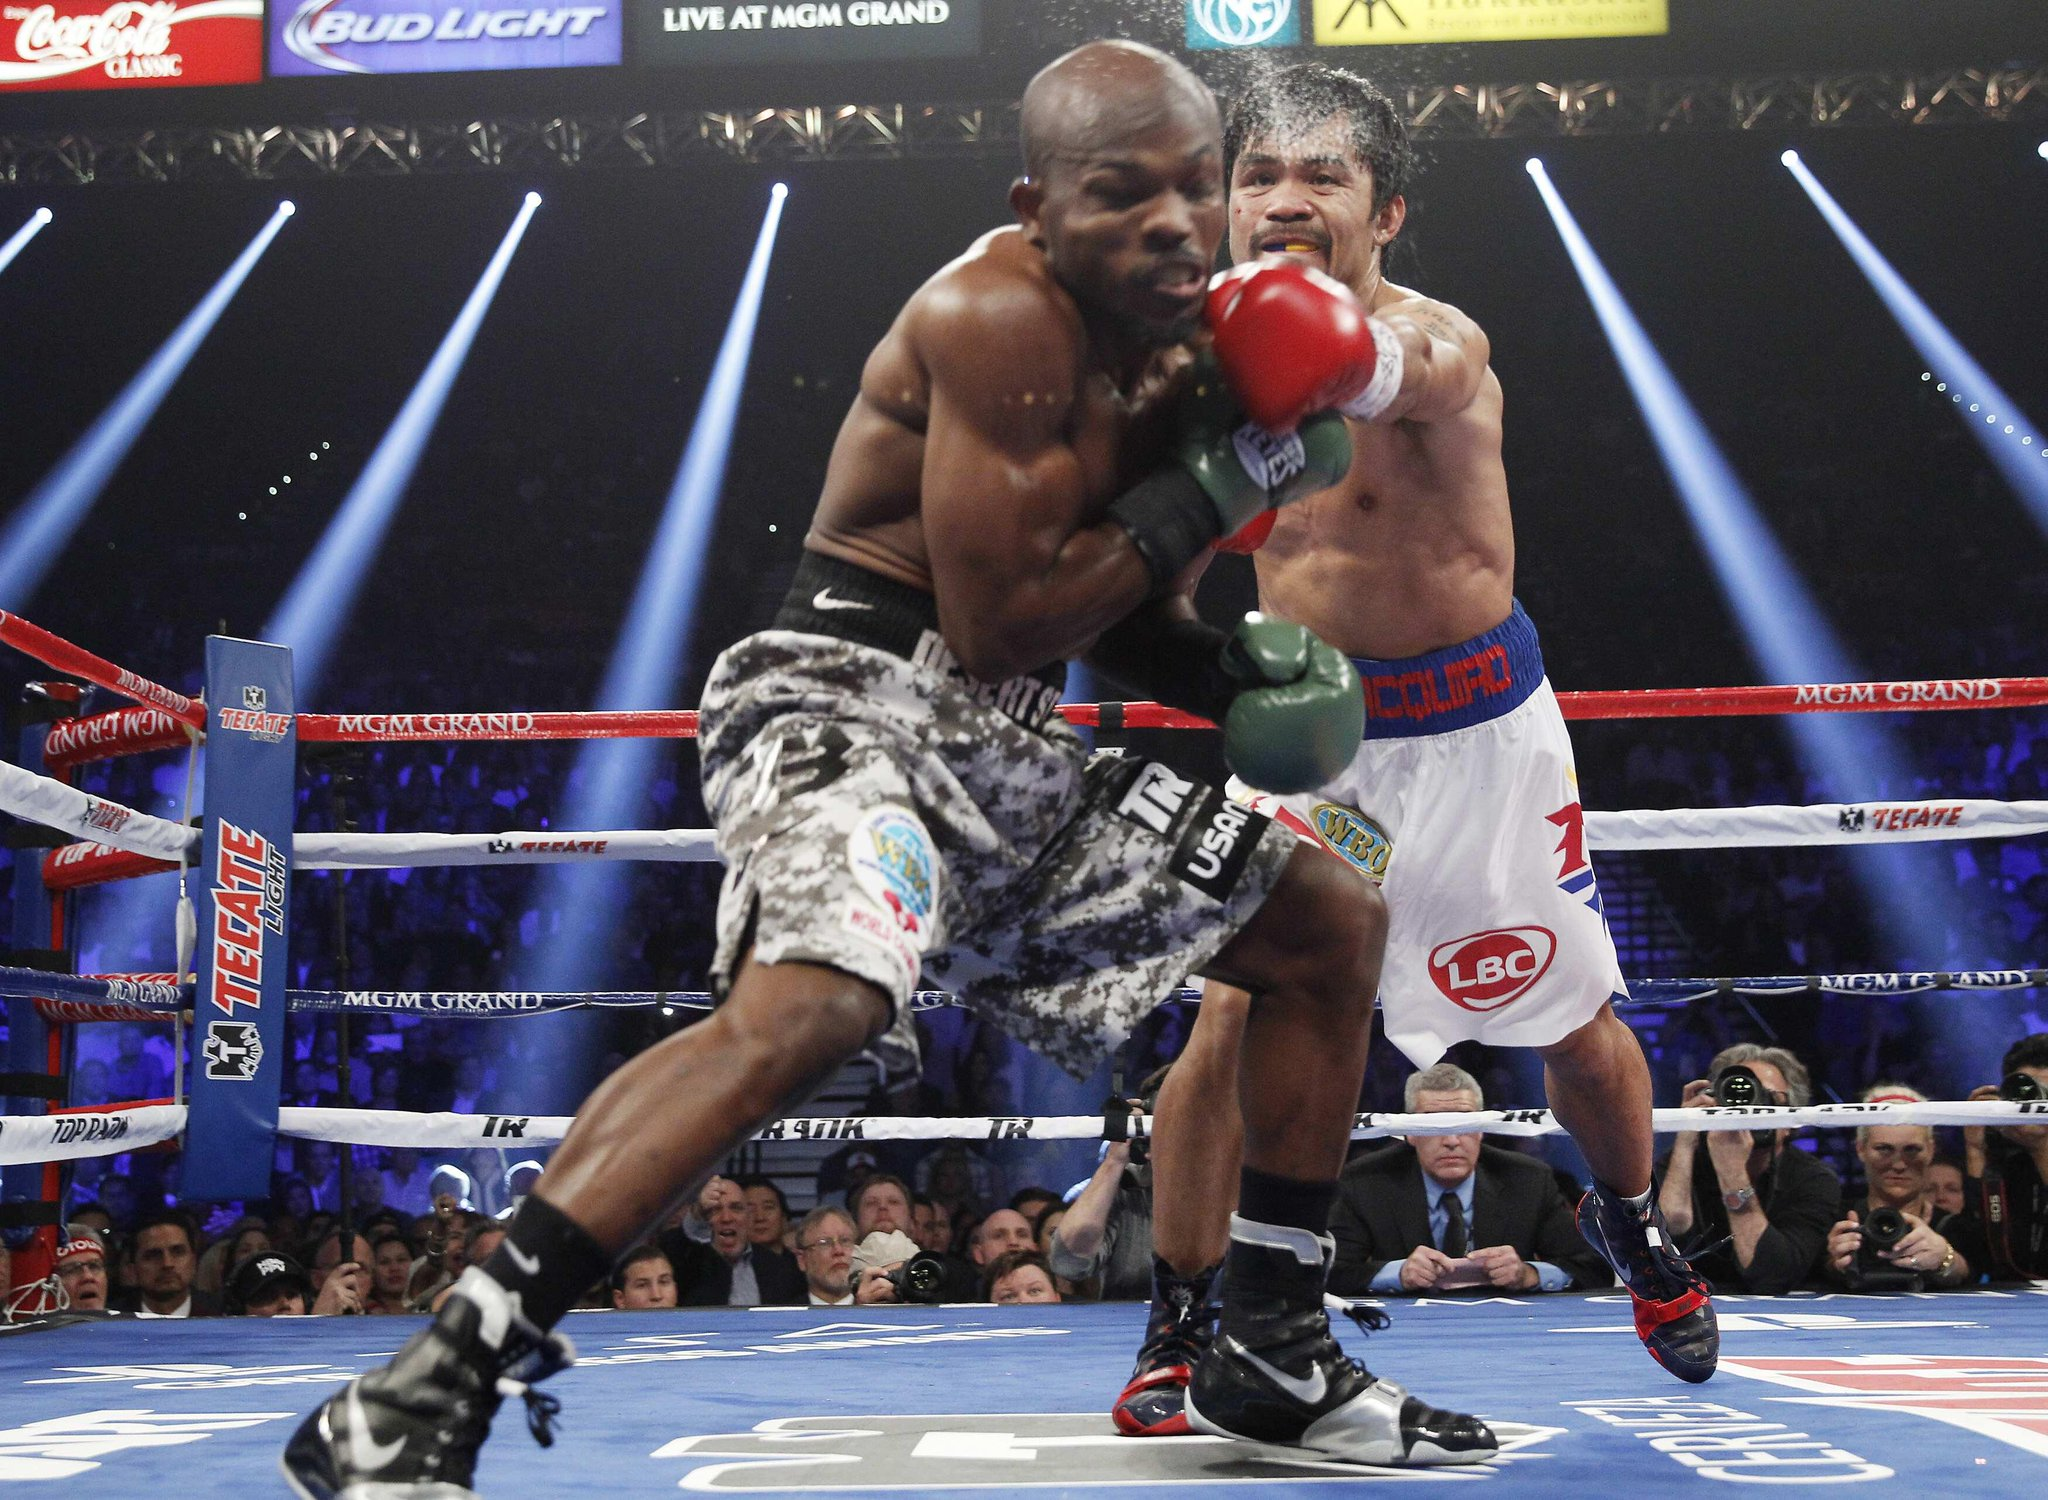 RT @ANCALERTS: BREAKING NEWS: Manny Pacquiao wins vs Bradley, unanimous decision #PacquiaoBradley2 (Photo via Reuters) http://t.co/zaVkkV2K?